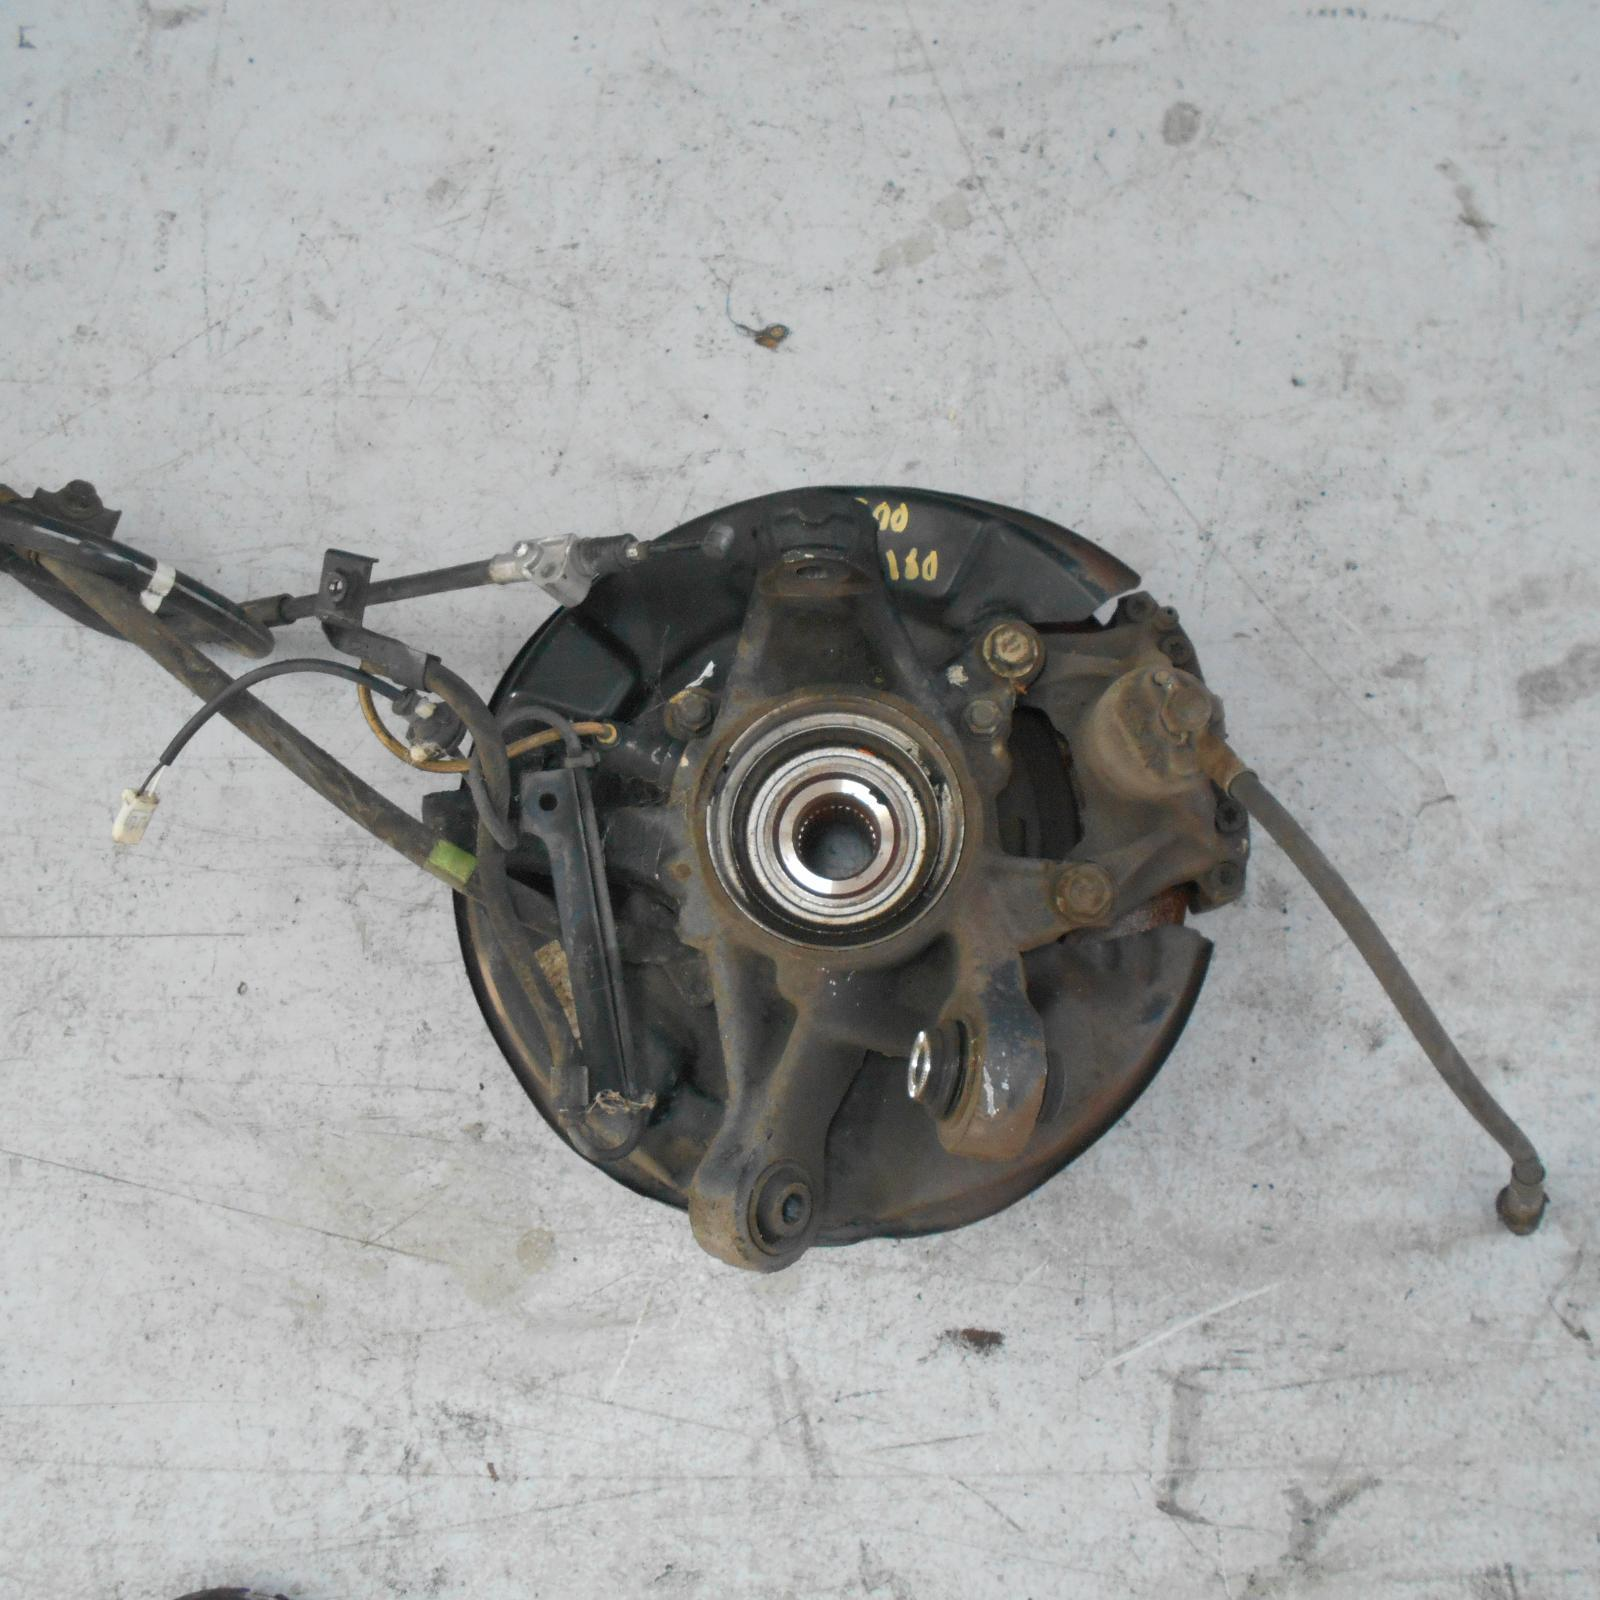 LEXUS GS, Right Rear Hub Assembly, ABS TYPE, 10/97-12/04